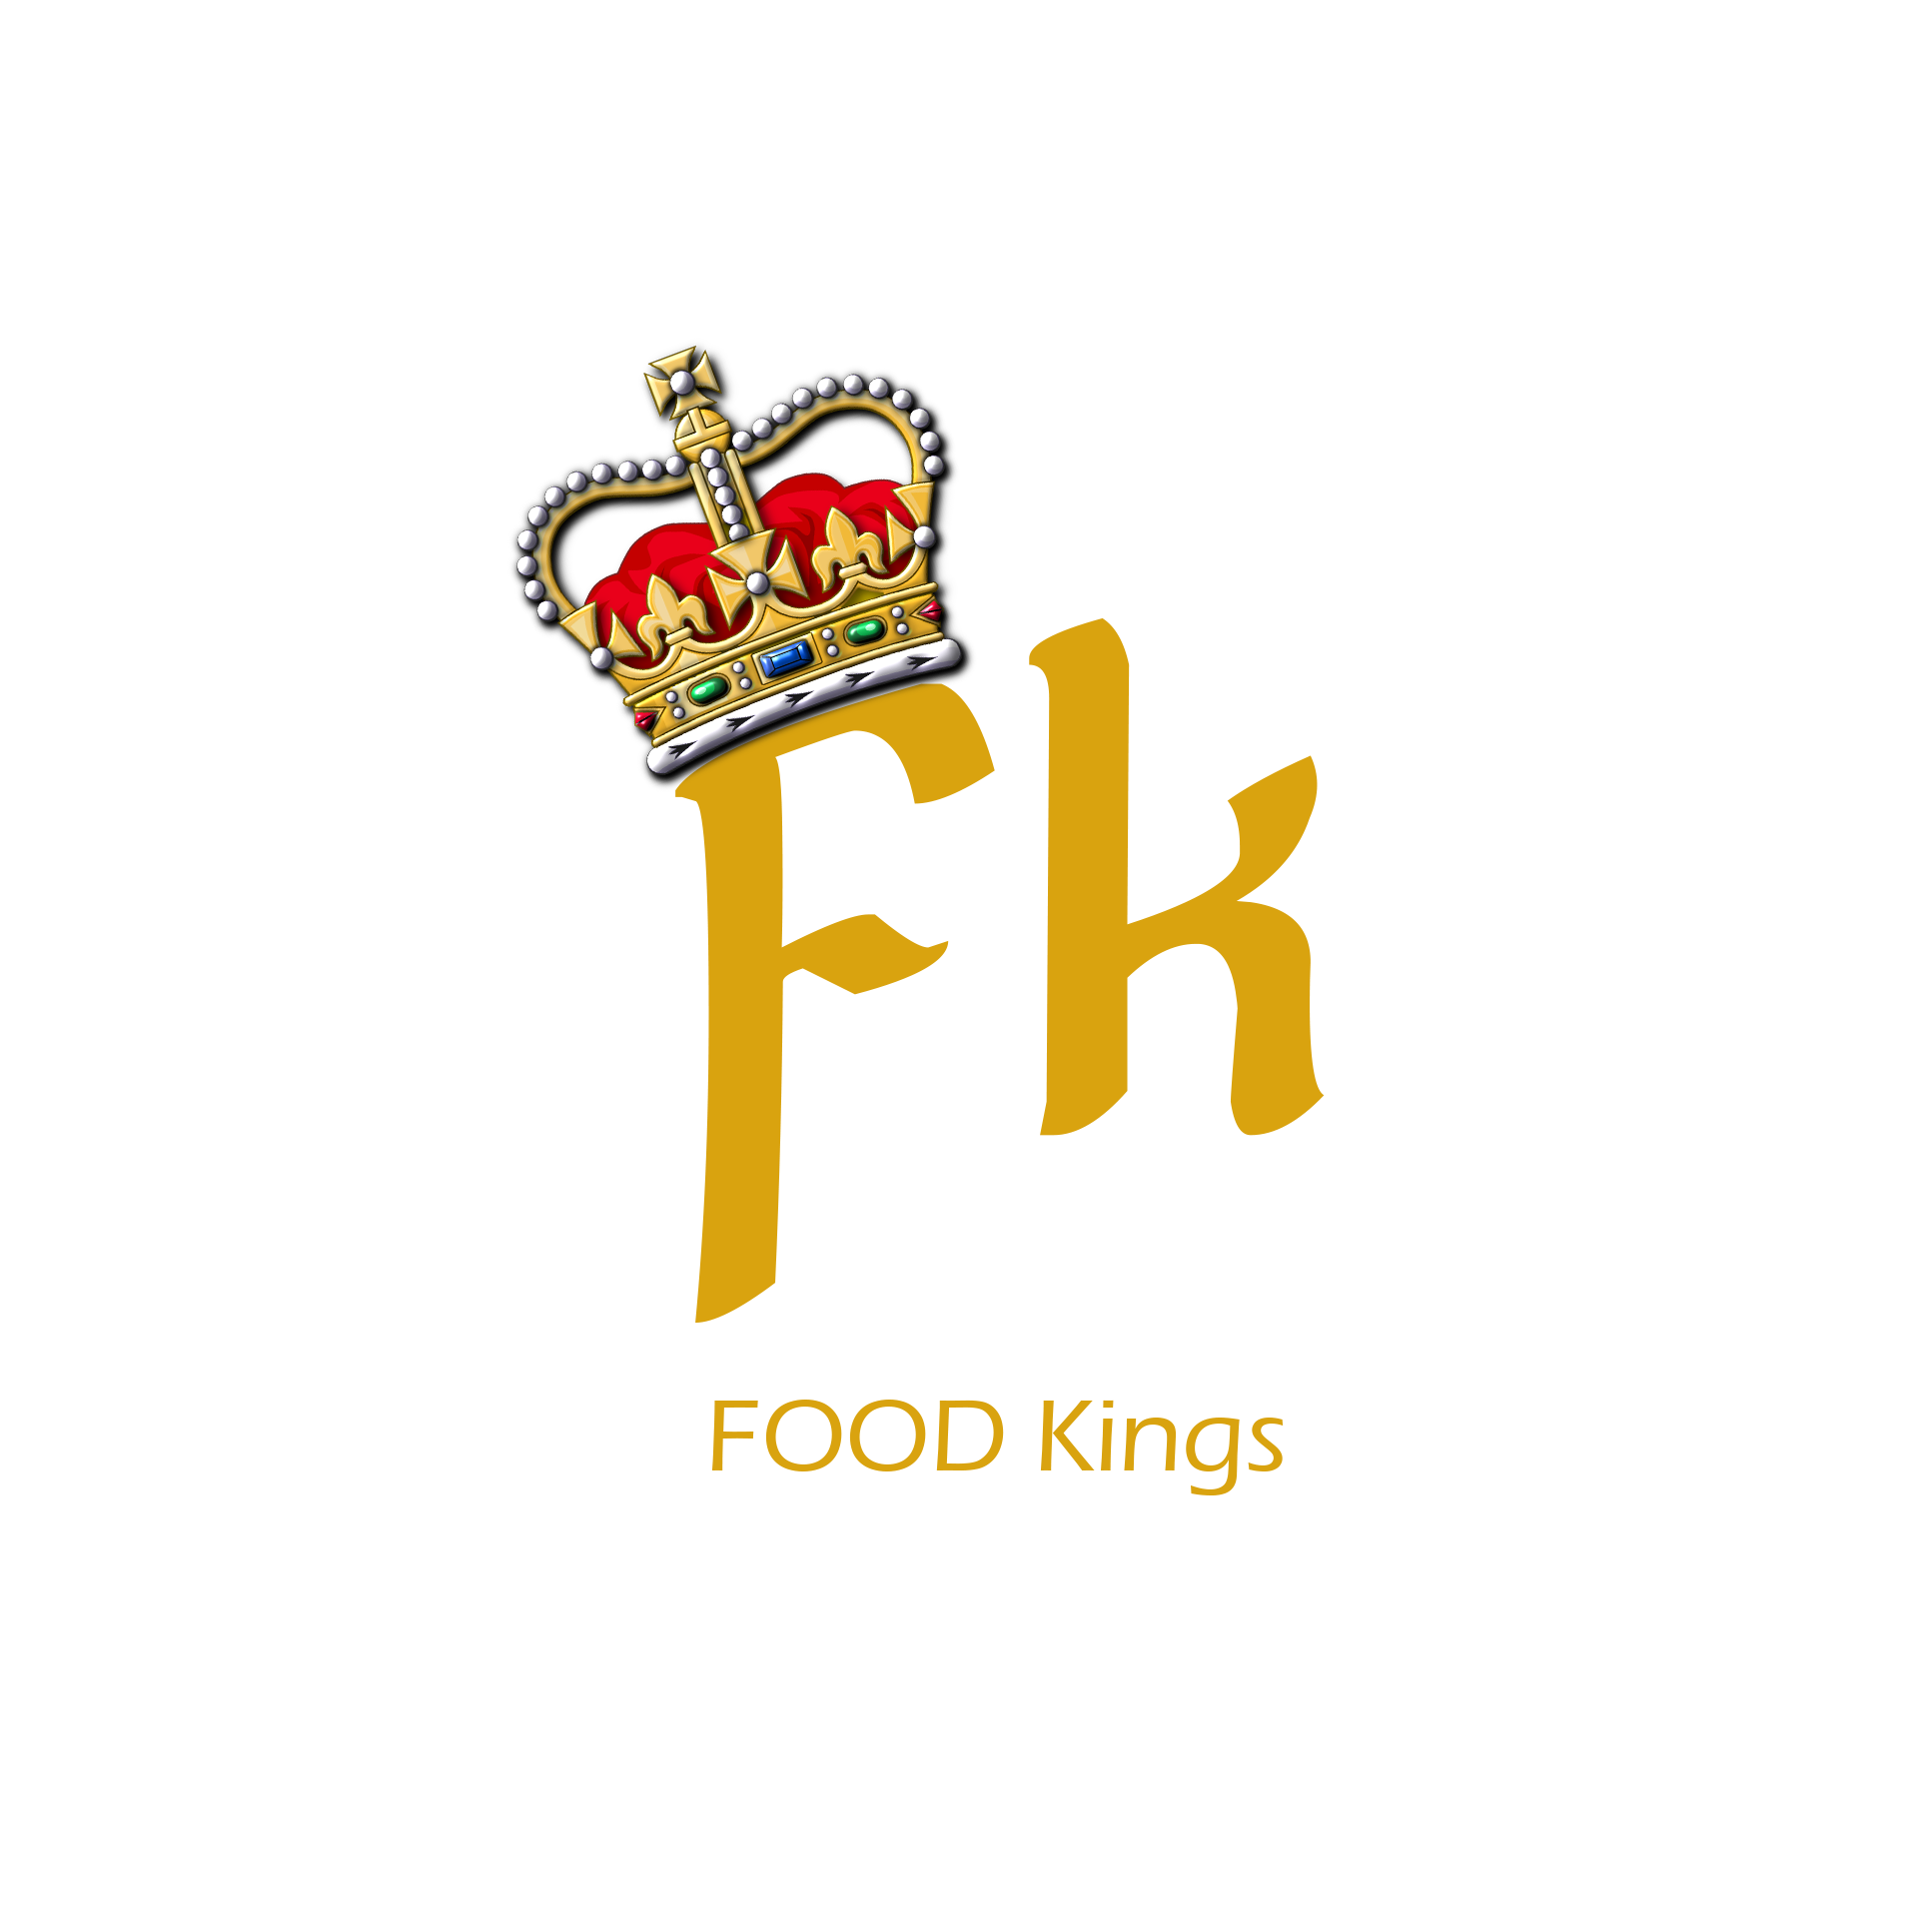 @foodkingsaustralia's cover photo for 'Food Videos | FoodKings'